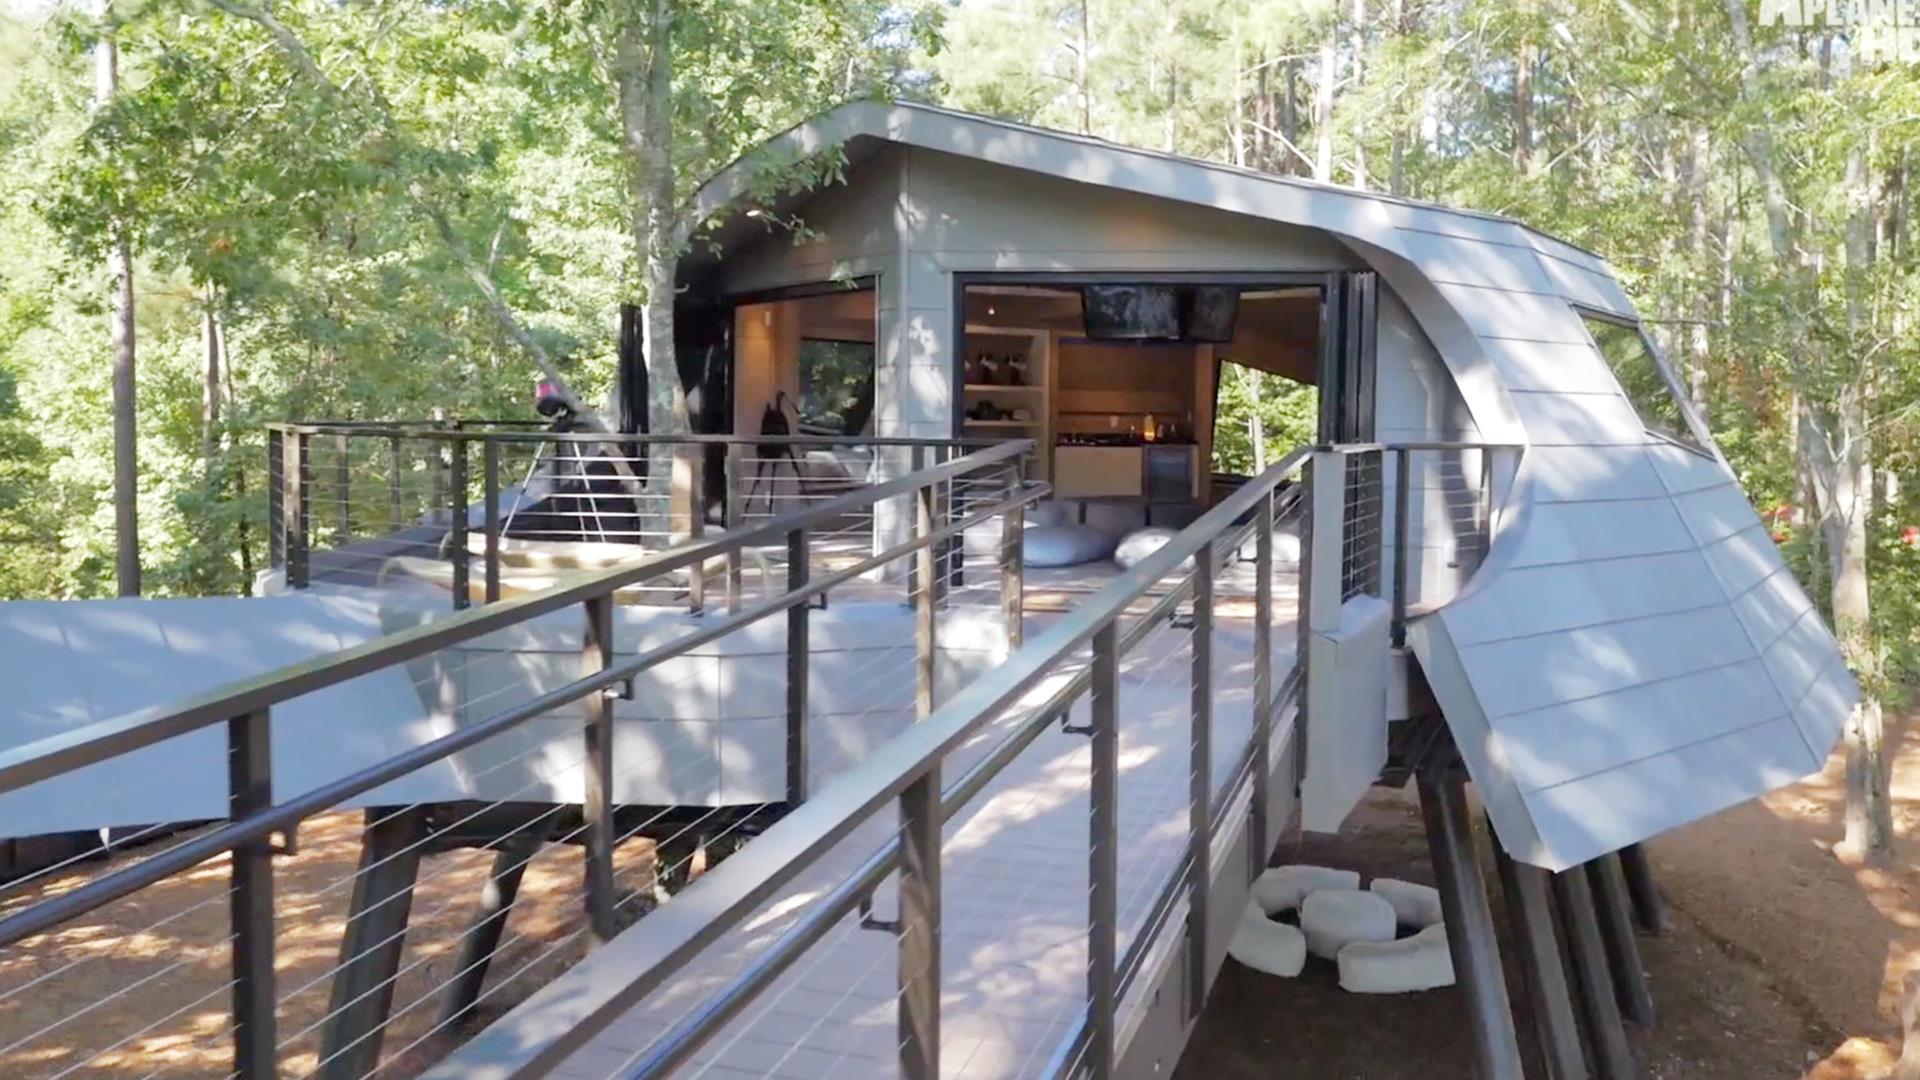 See Zac Brown's huge, otherworldly treehouse at Camp Southern Ground Zak Home Planet on home science, home tree, home tower, home truck, home color, home fire, home of superman krypton, home community, home of superman metropolis illinois, home flower, home ice, home food, home satellite, home school,